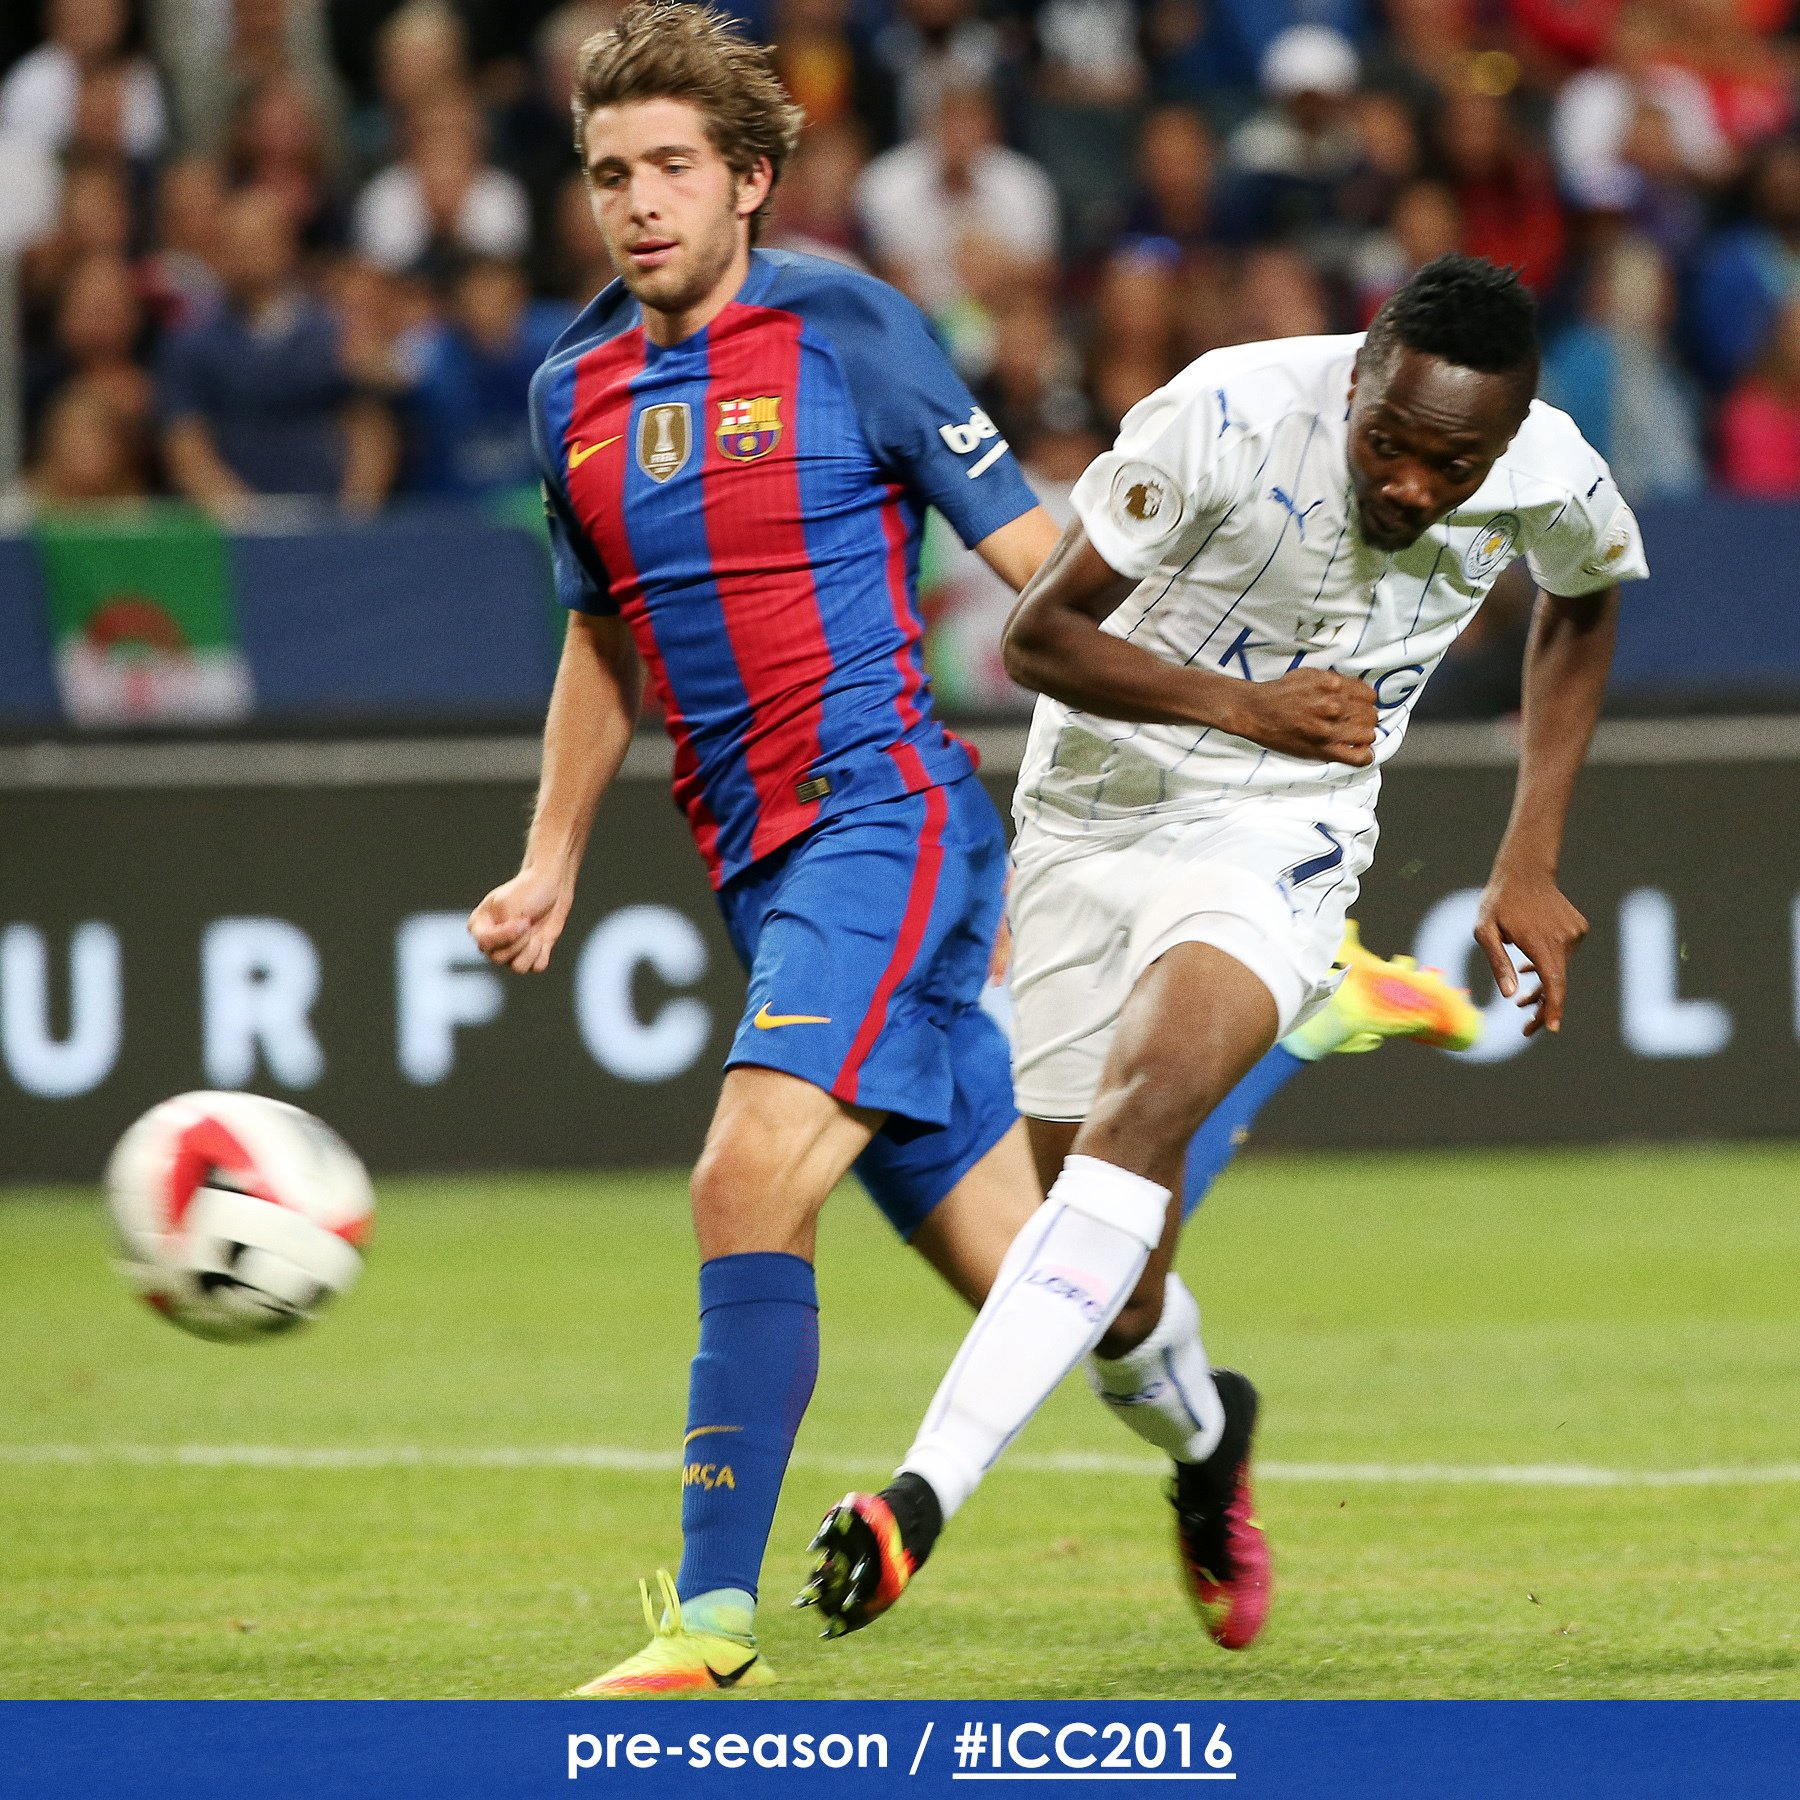 Musa Bags Brace, Outshines Messi As Barcelona Edge Leicester